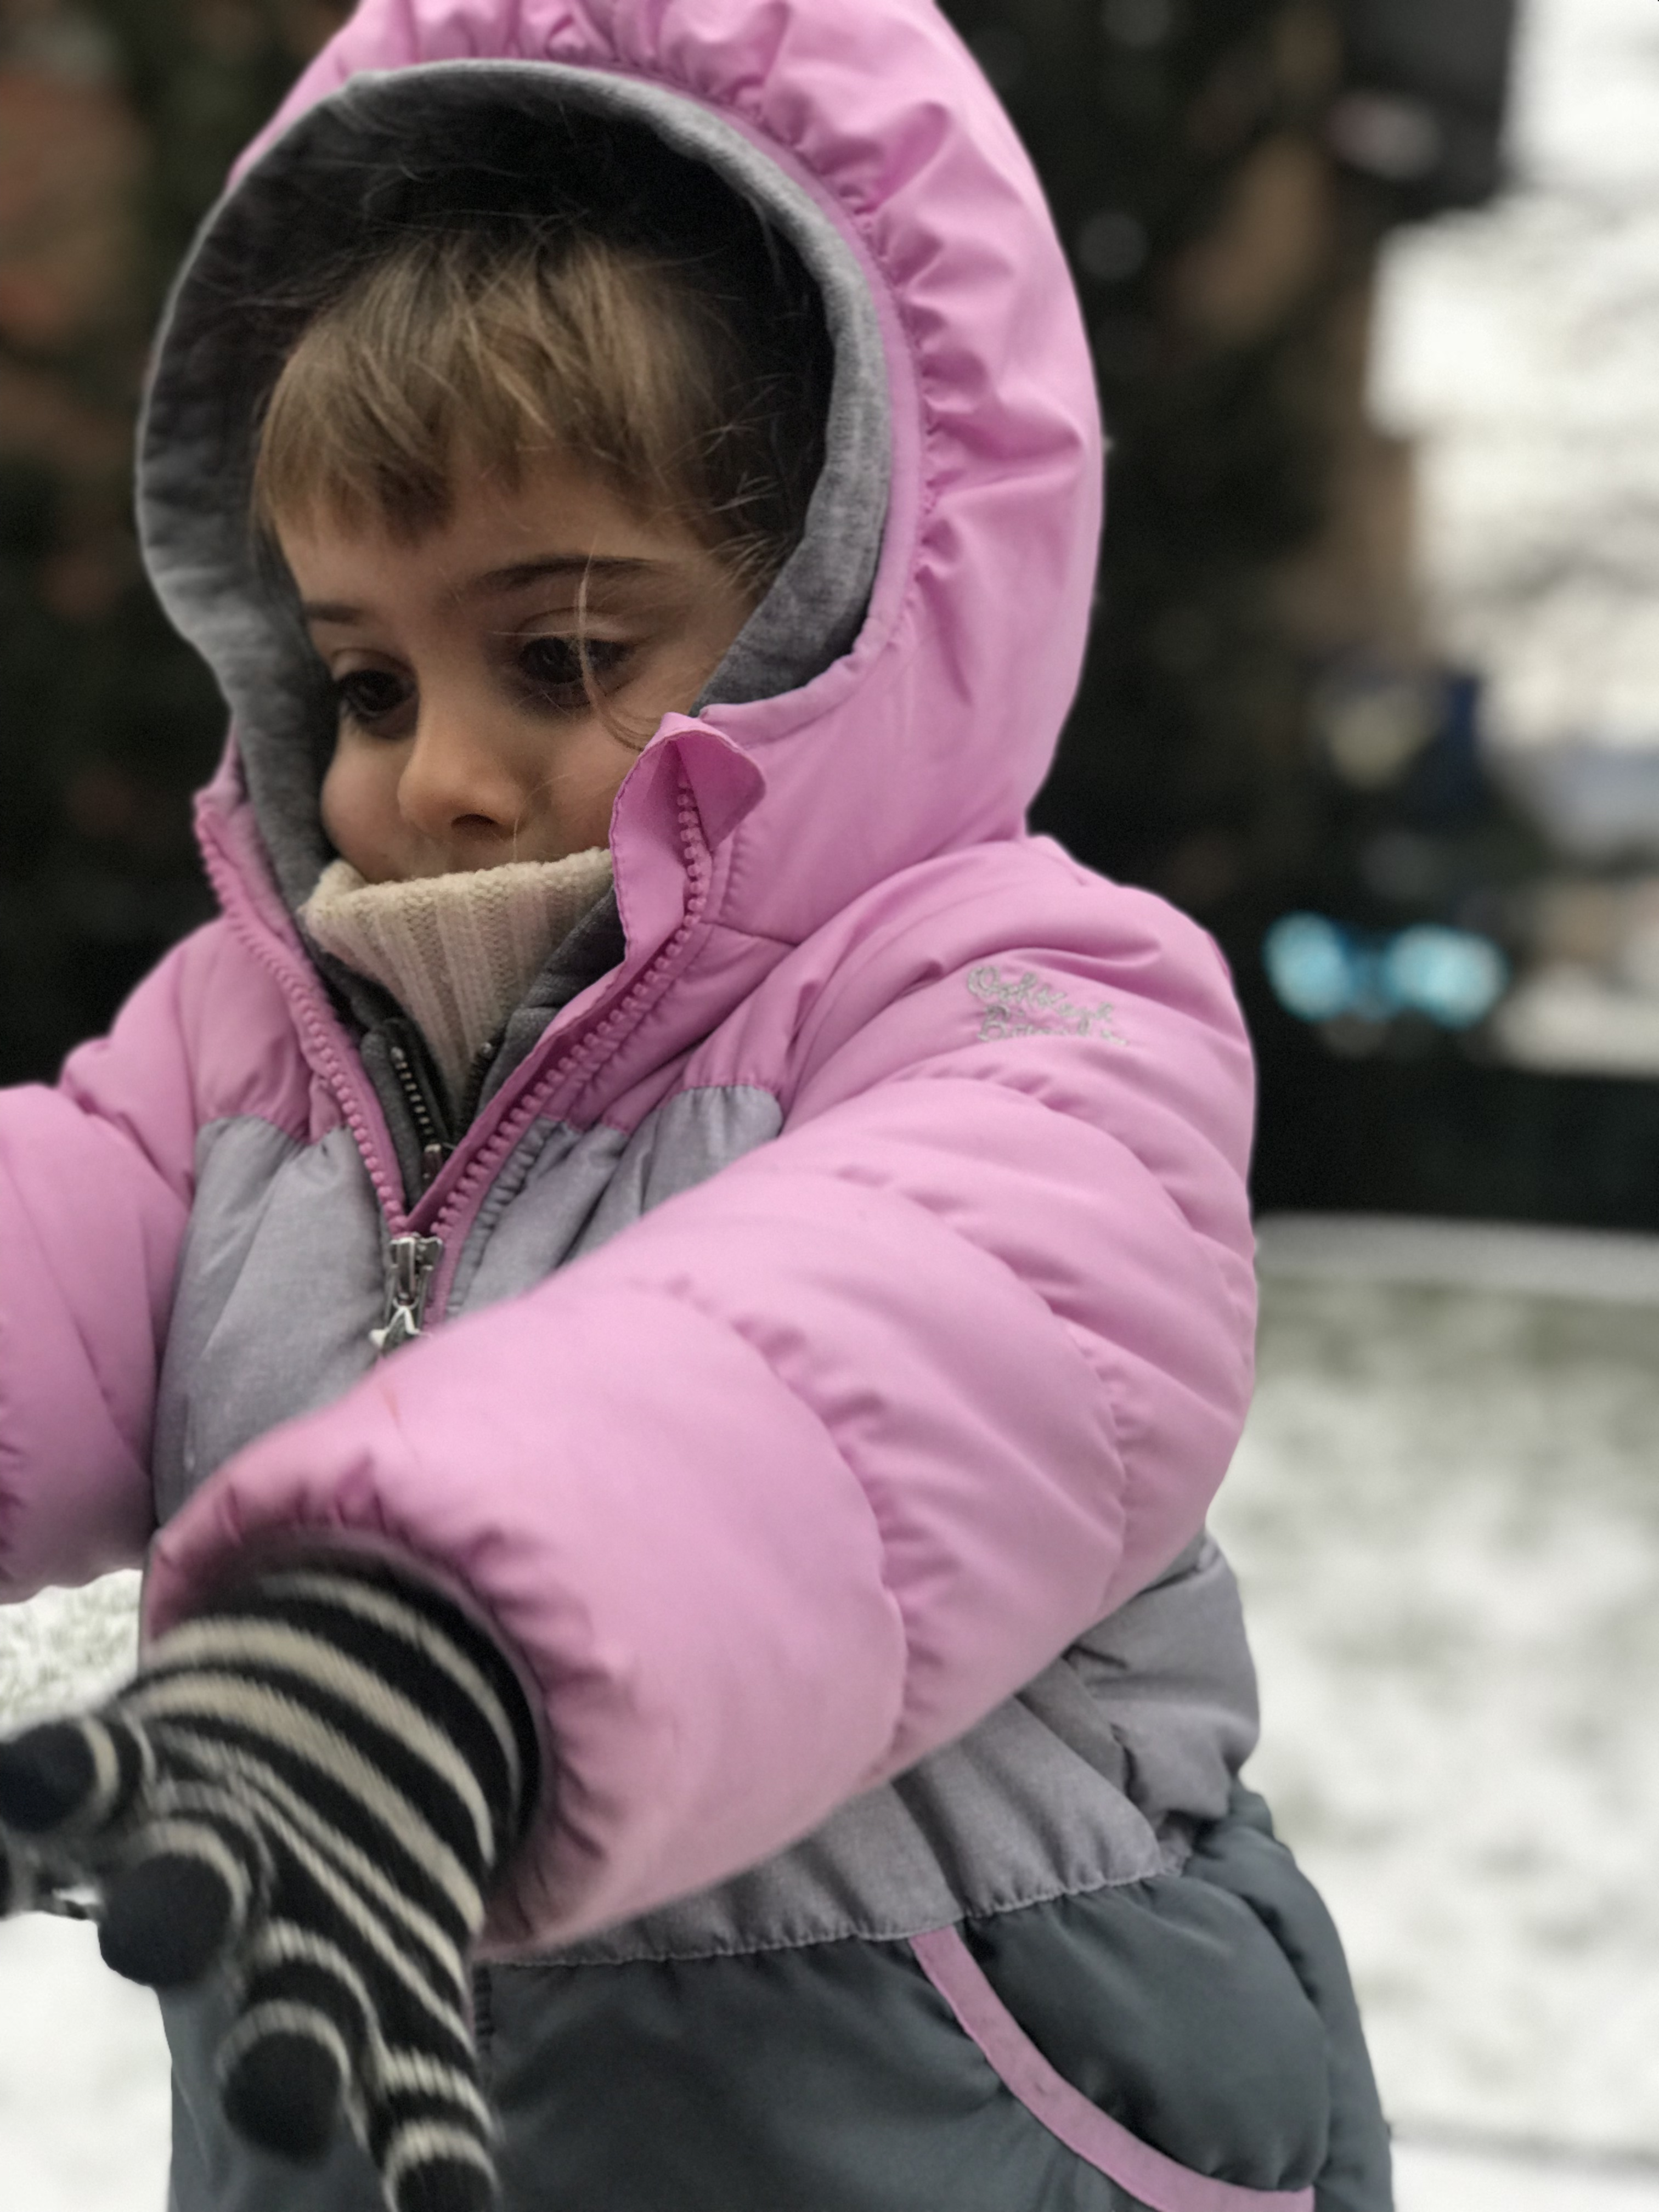 toddler bundled up in pink coat with snow in background, new york city highline park